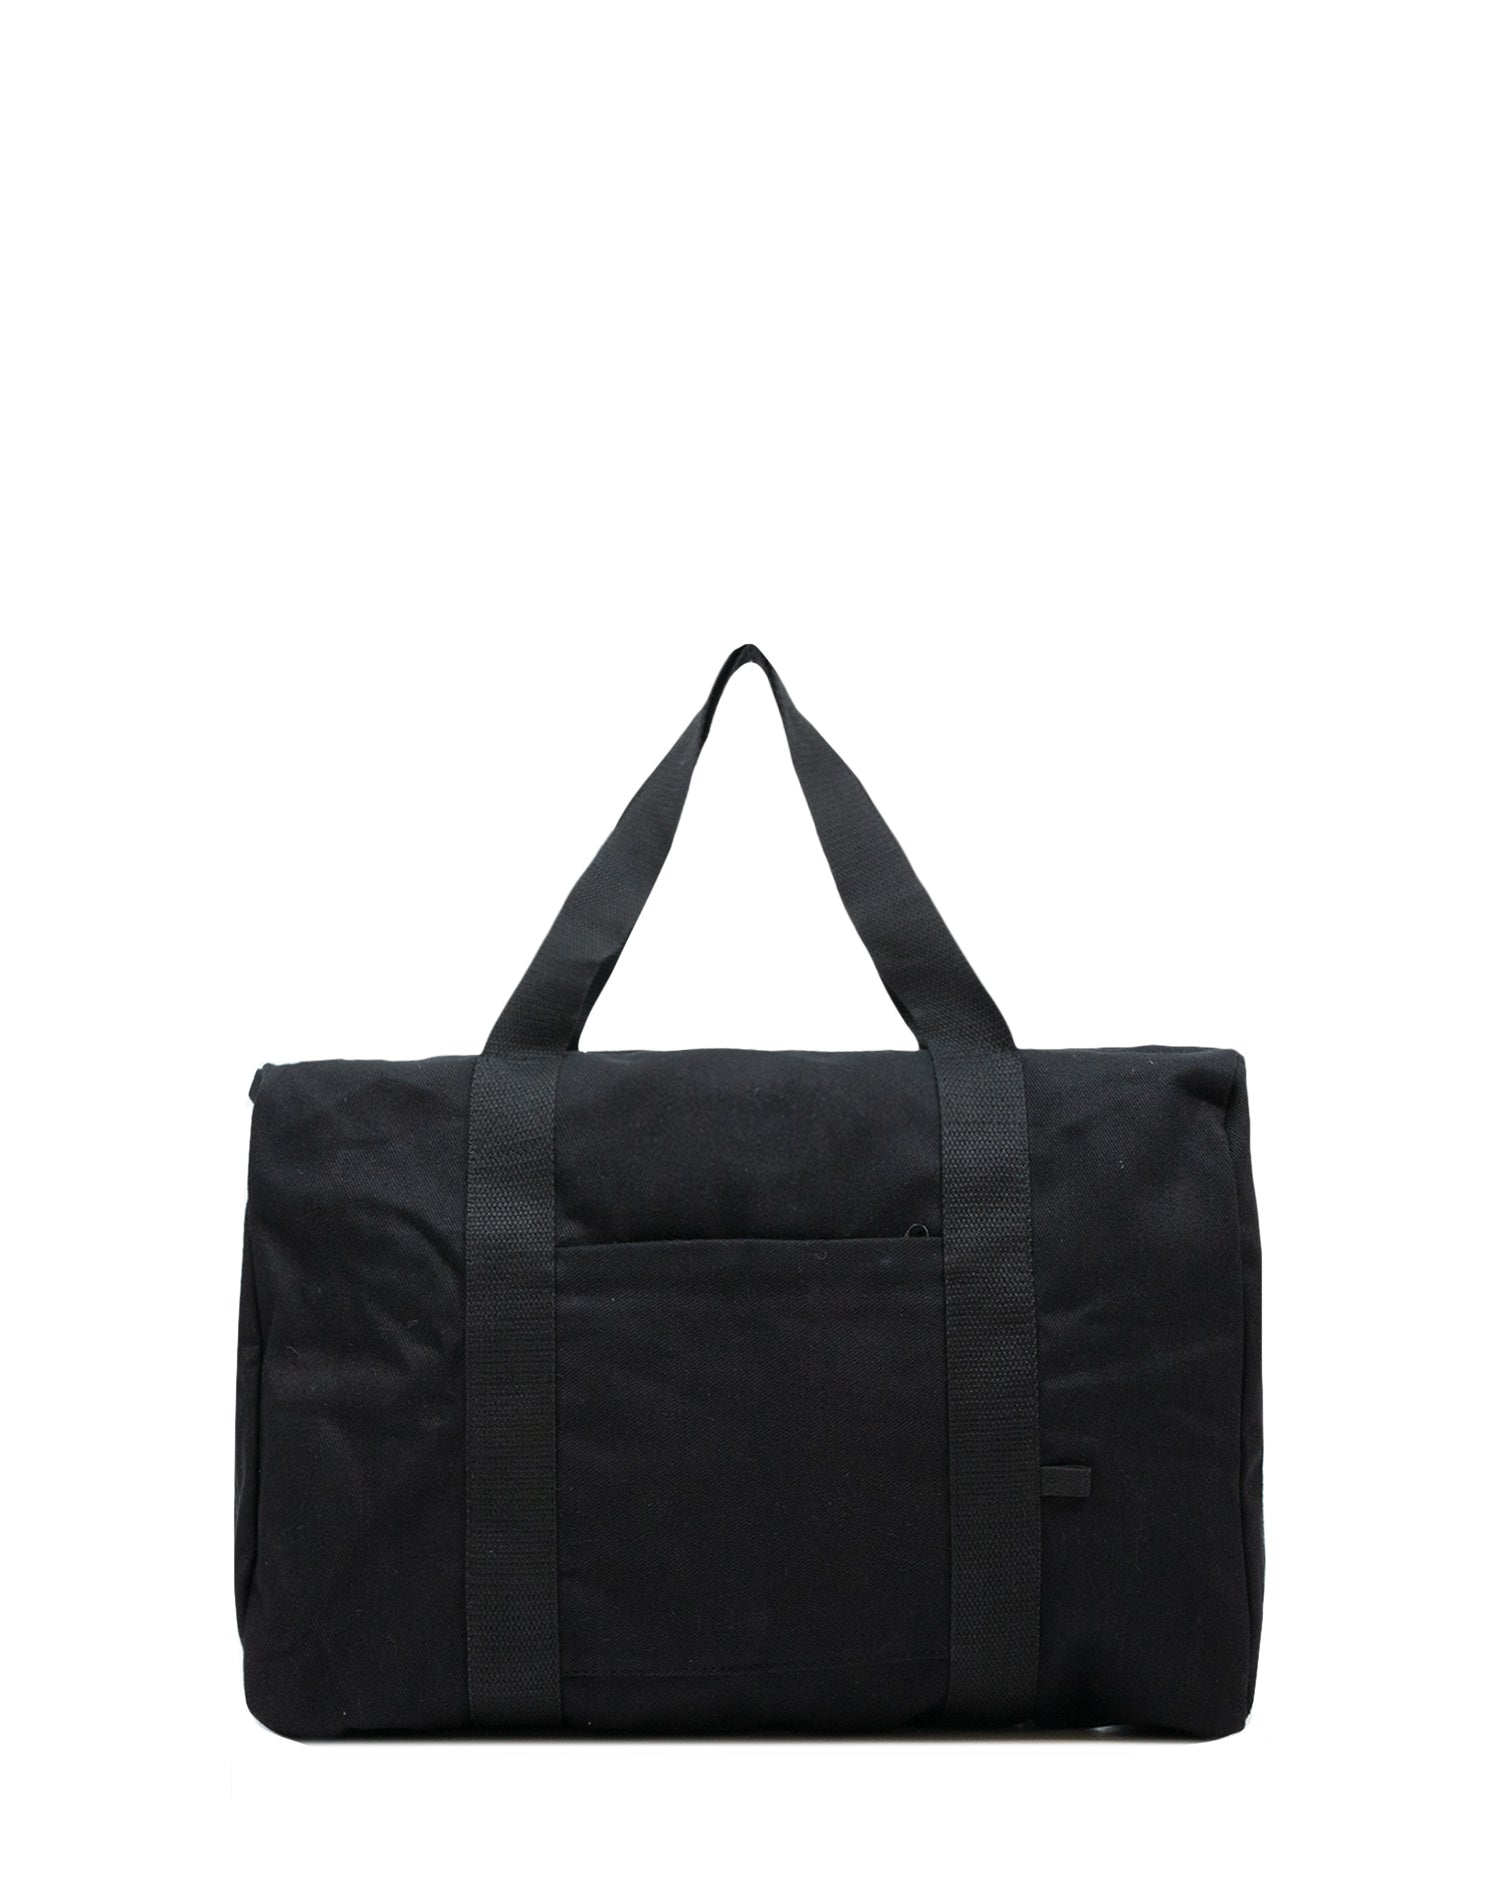 Black Canvas Street Duffel Bag.黑色帆布行李袋